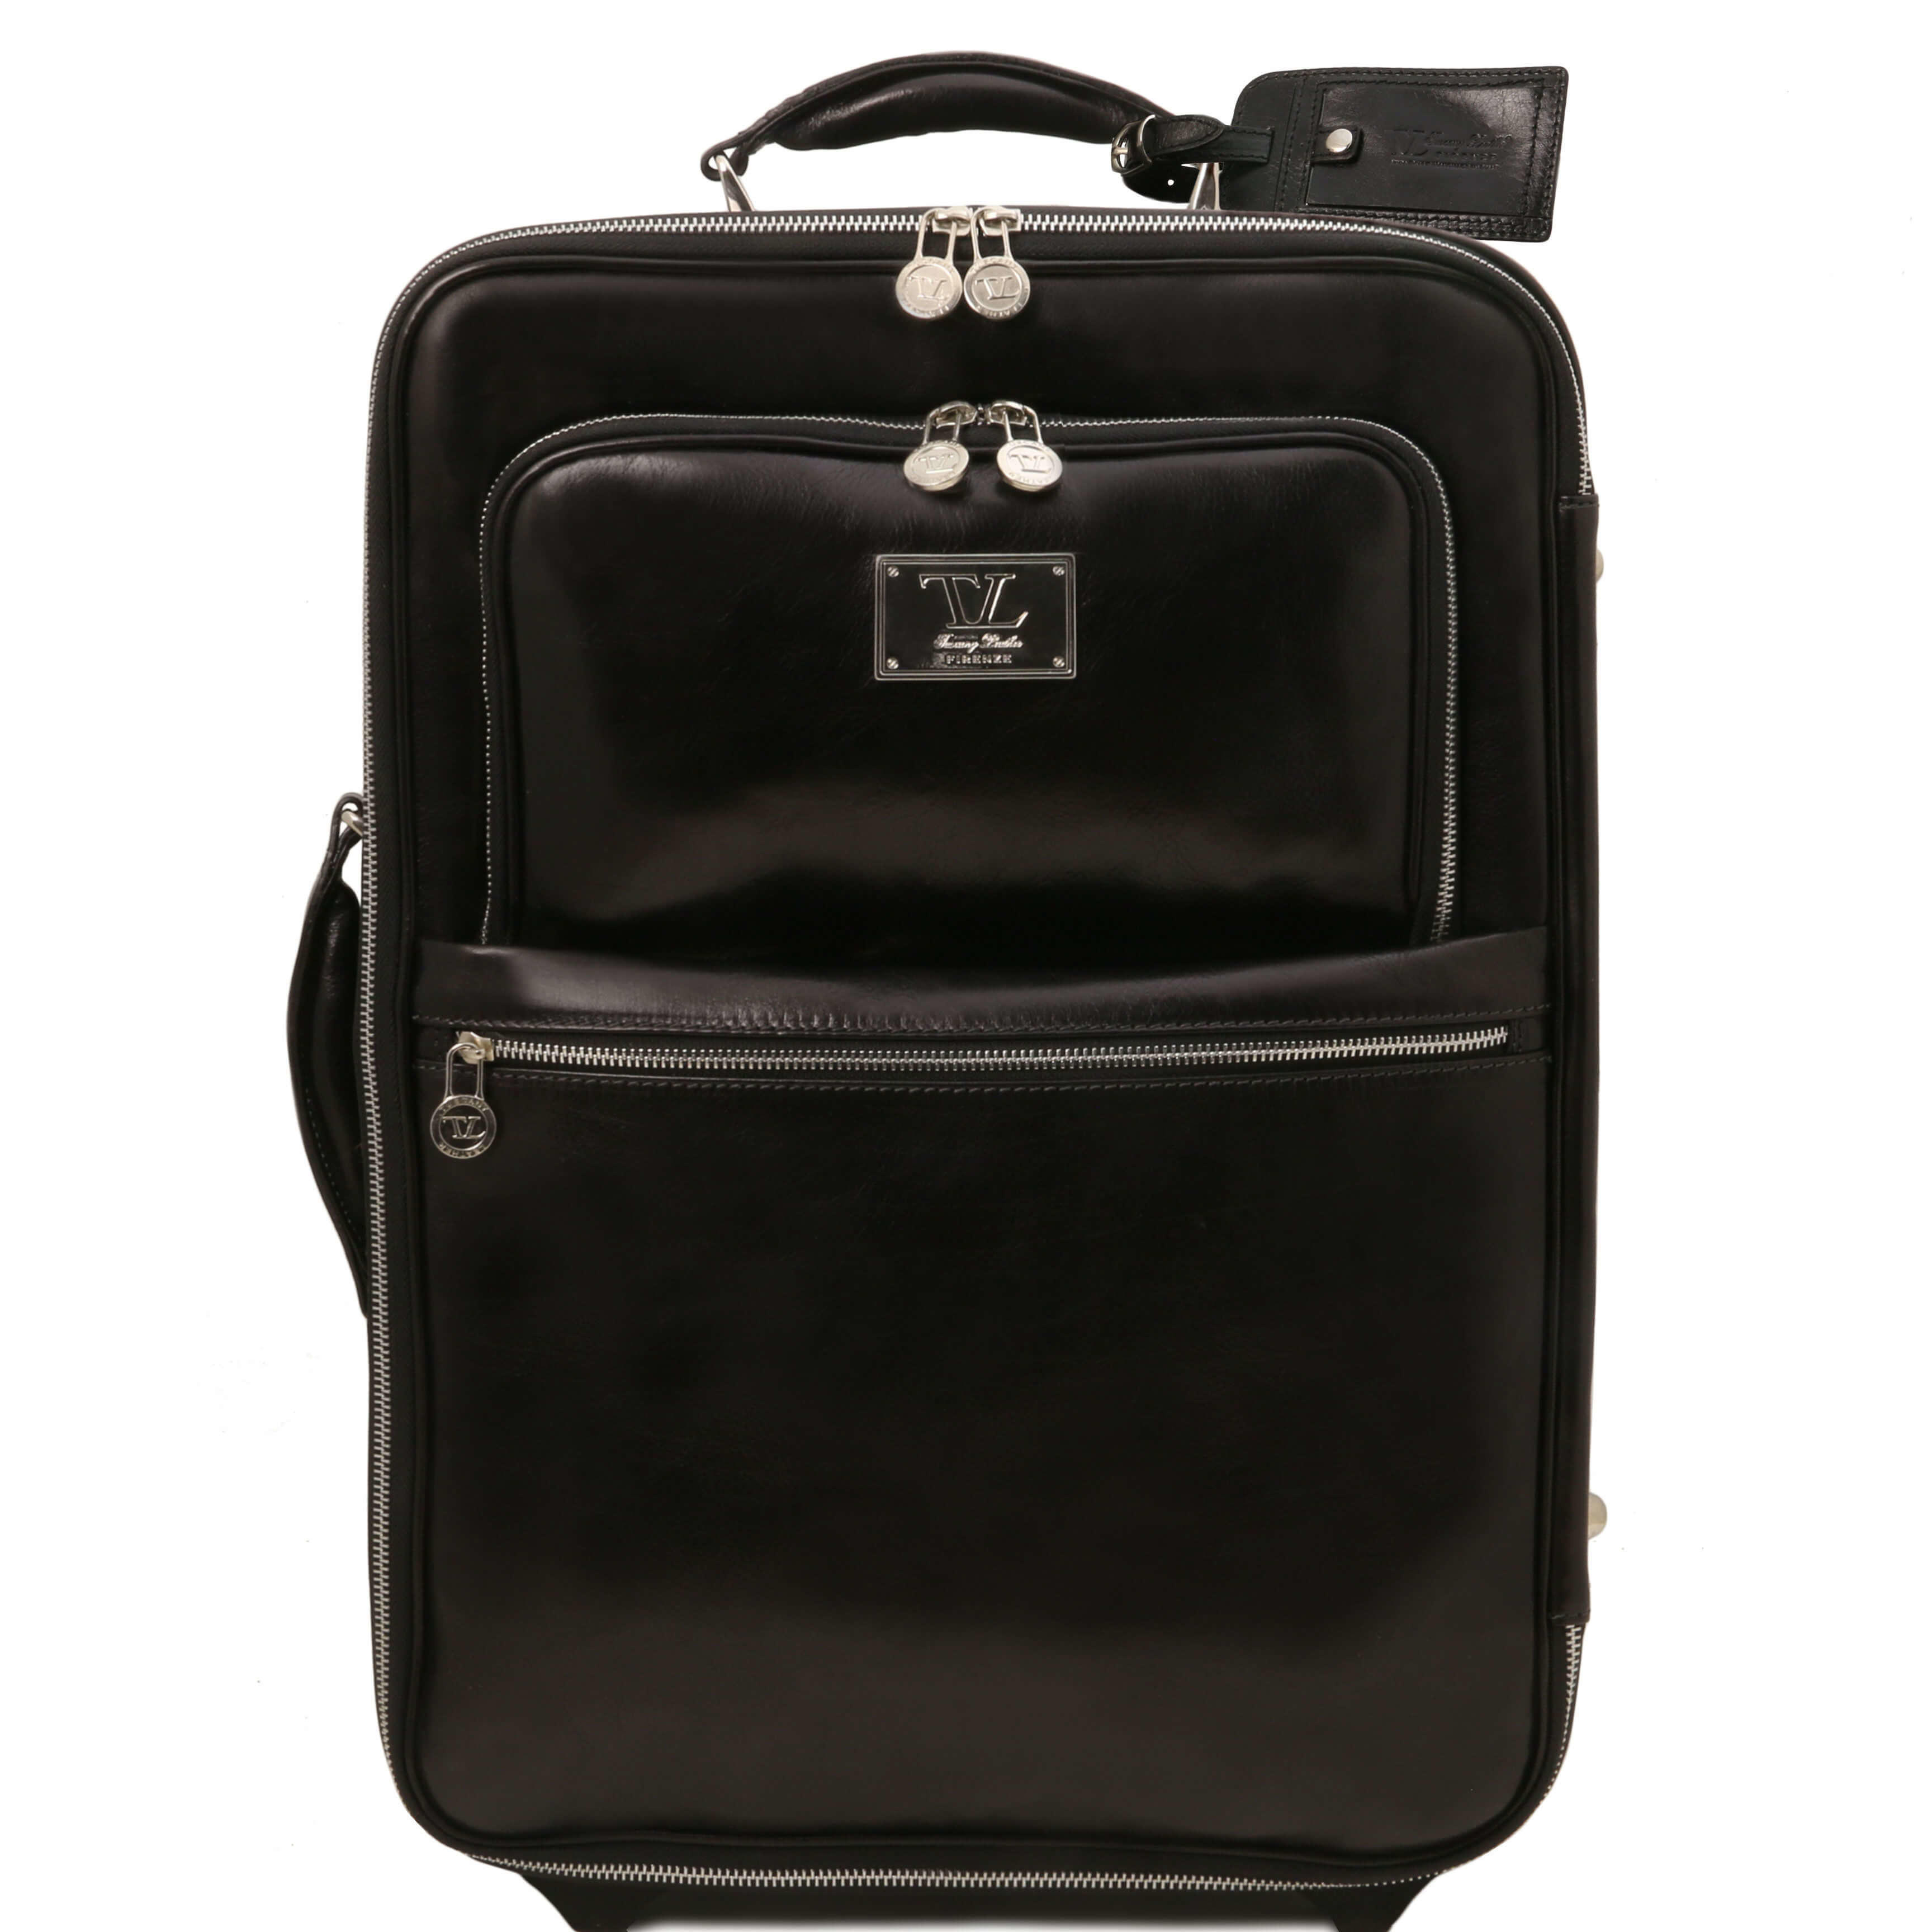 TL141389 Voyager 2 Wheeled Travel-Luggage Bag-Case in Polished C